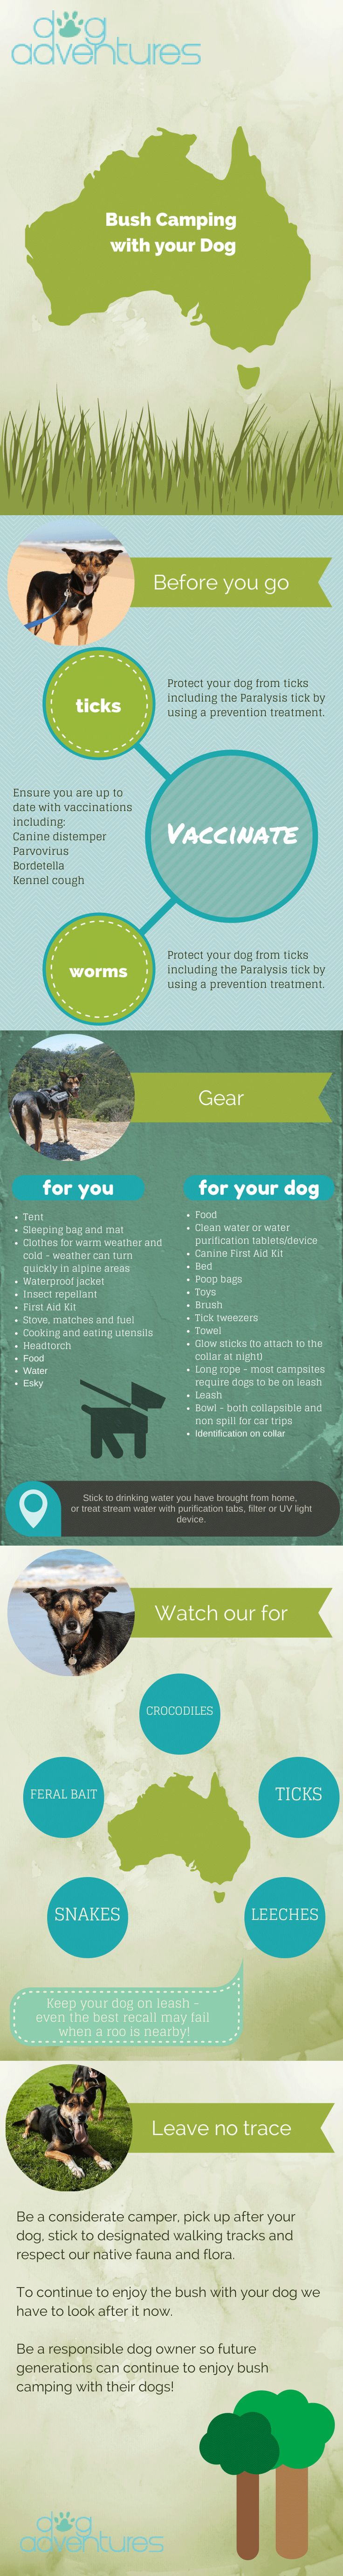 Bush Camping with your Dog Infographic - Dog Adventures #camping #infographic #dog